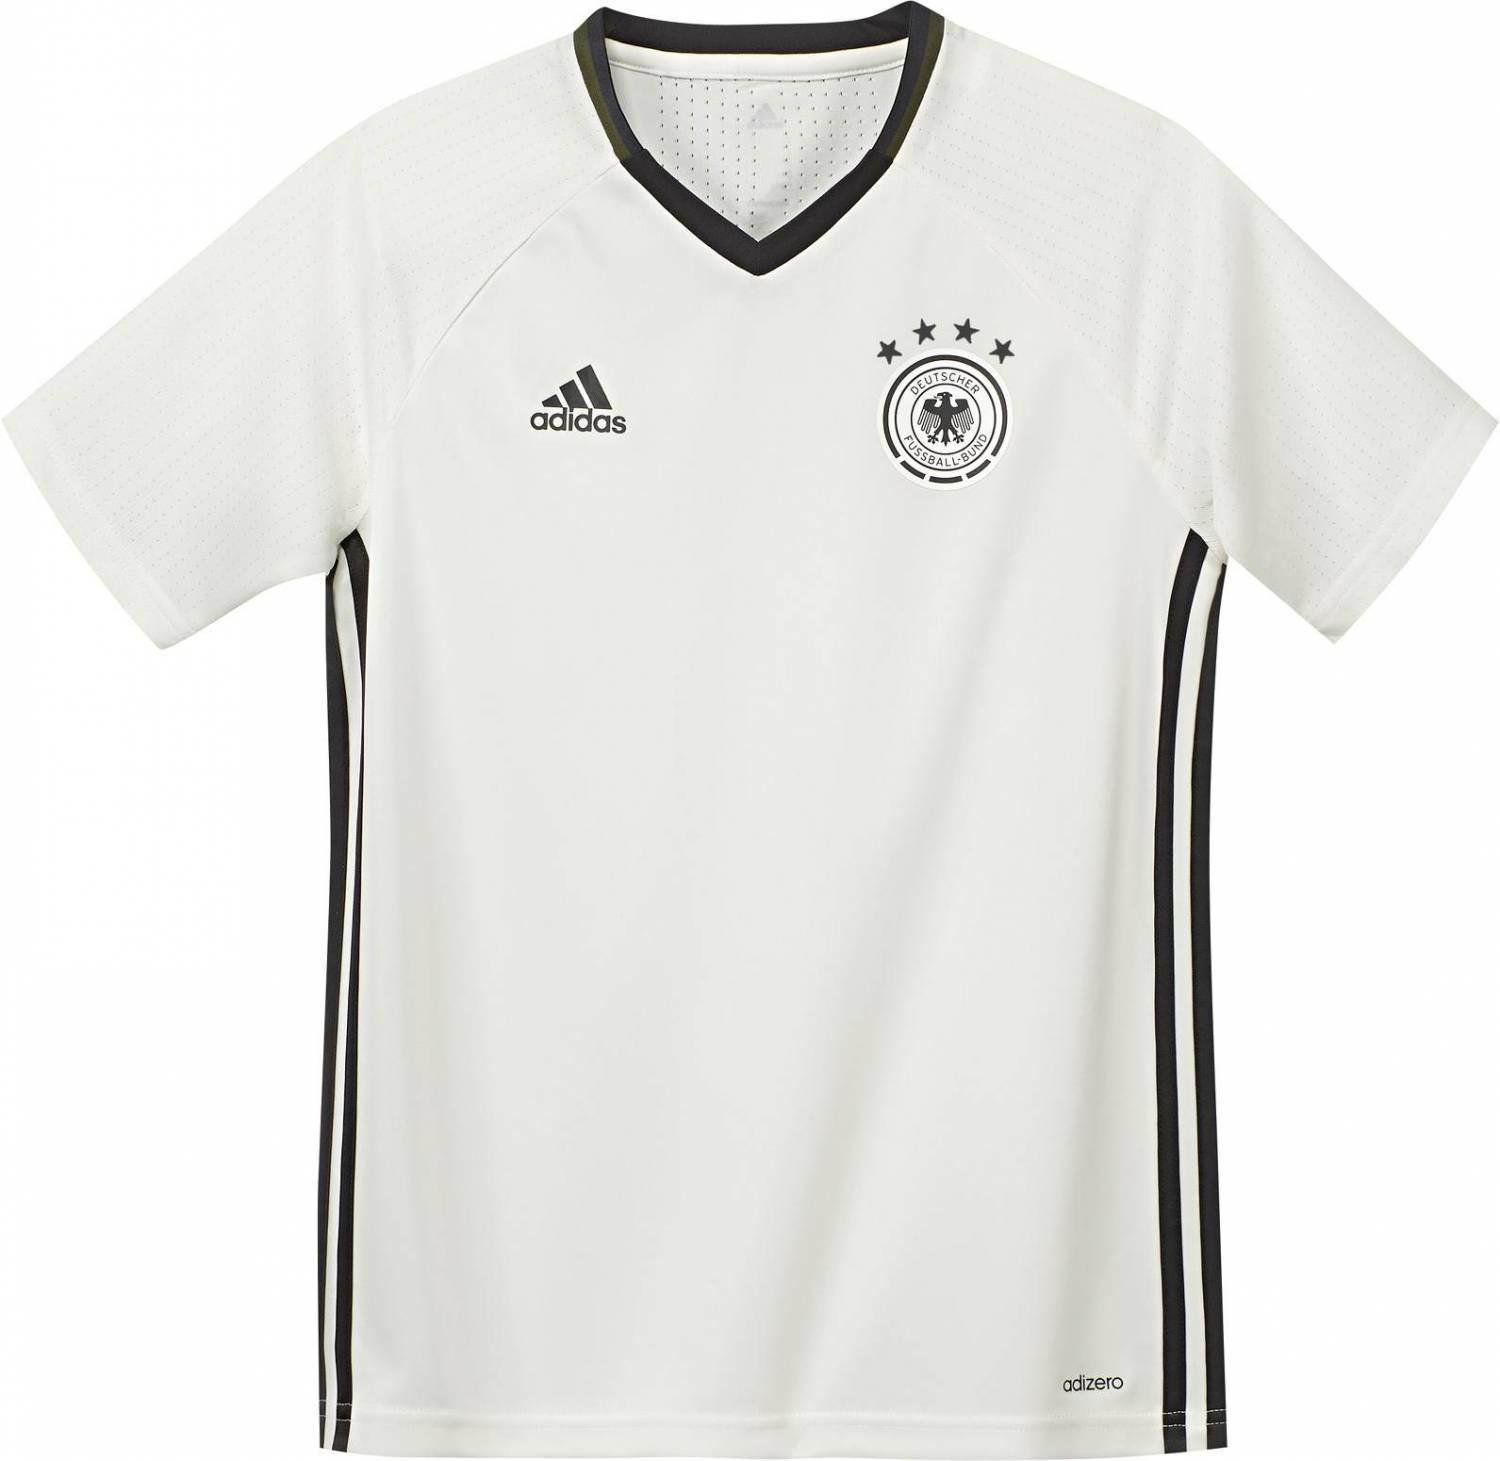 ADIDAS DFB FUSSBALL Nationalmannschaft Kinder Trainingstrikot T Shirt Gr. 140